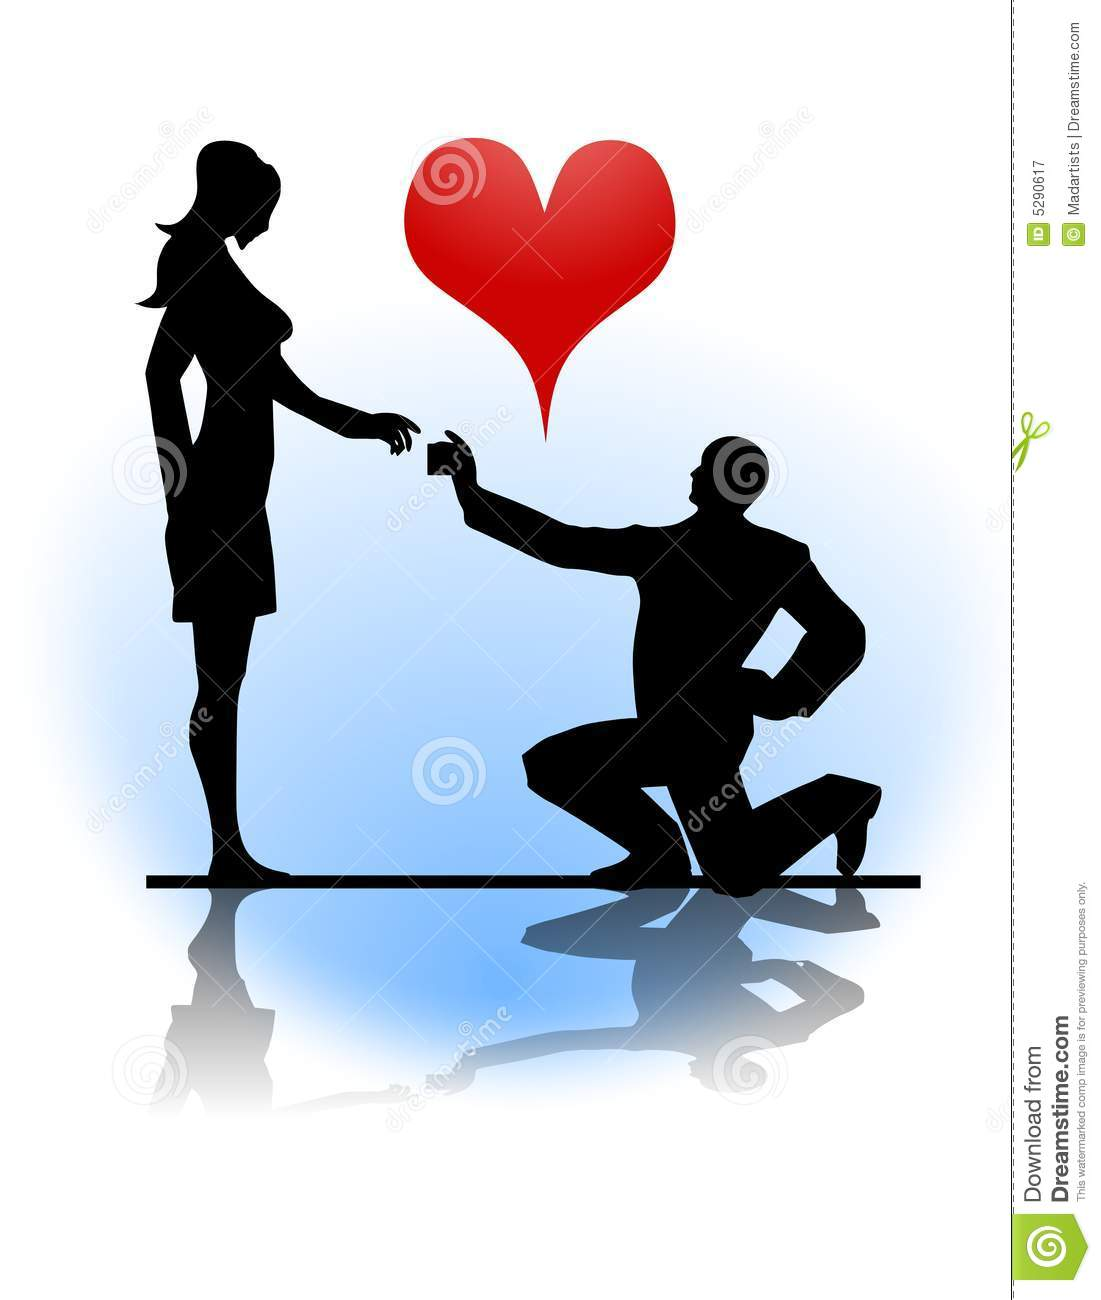 Man Proposing Marriage To Woman Royalty Free Stock Photography - Image